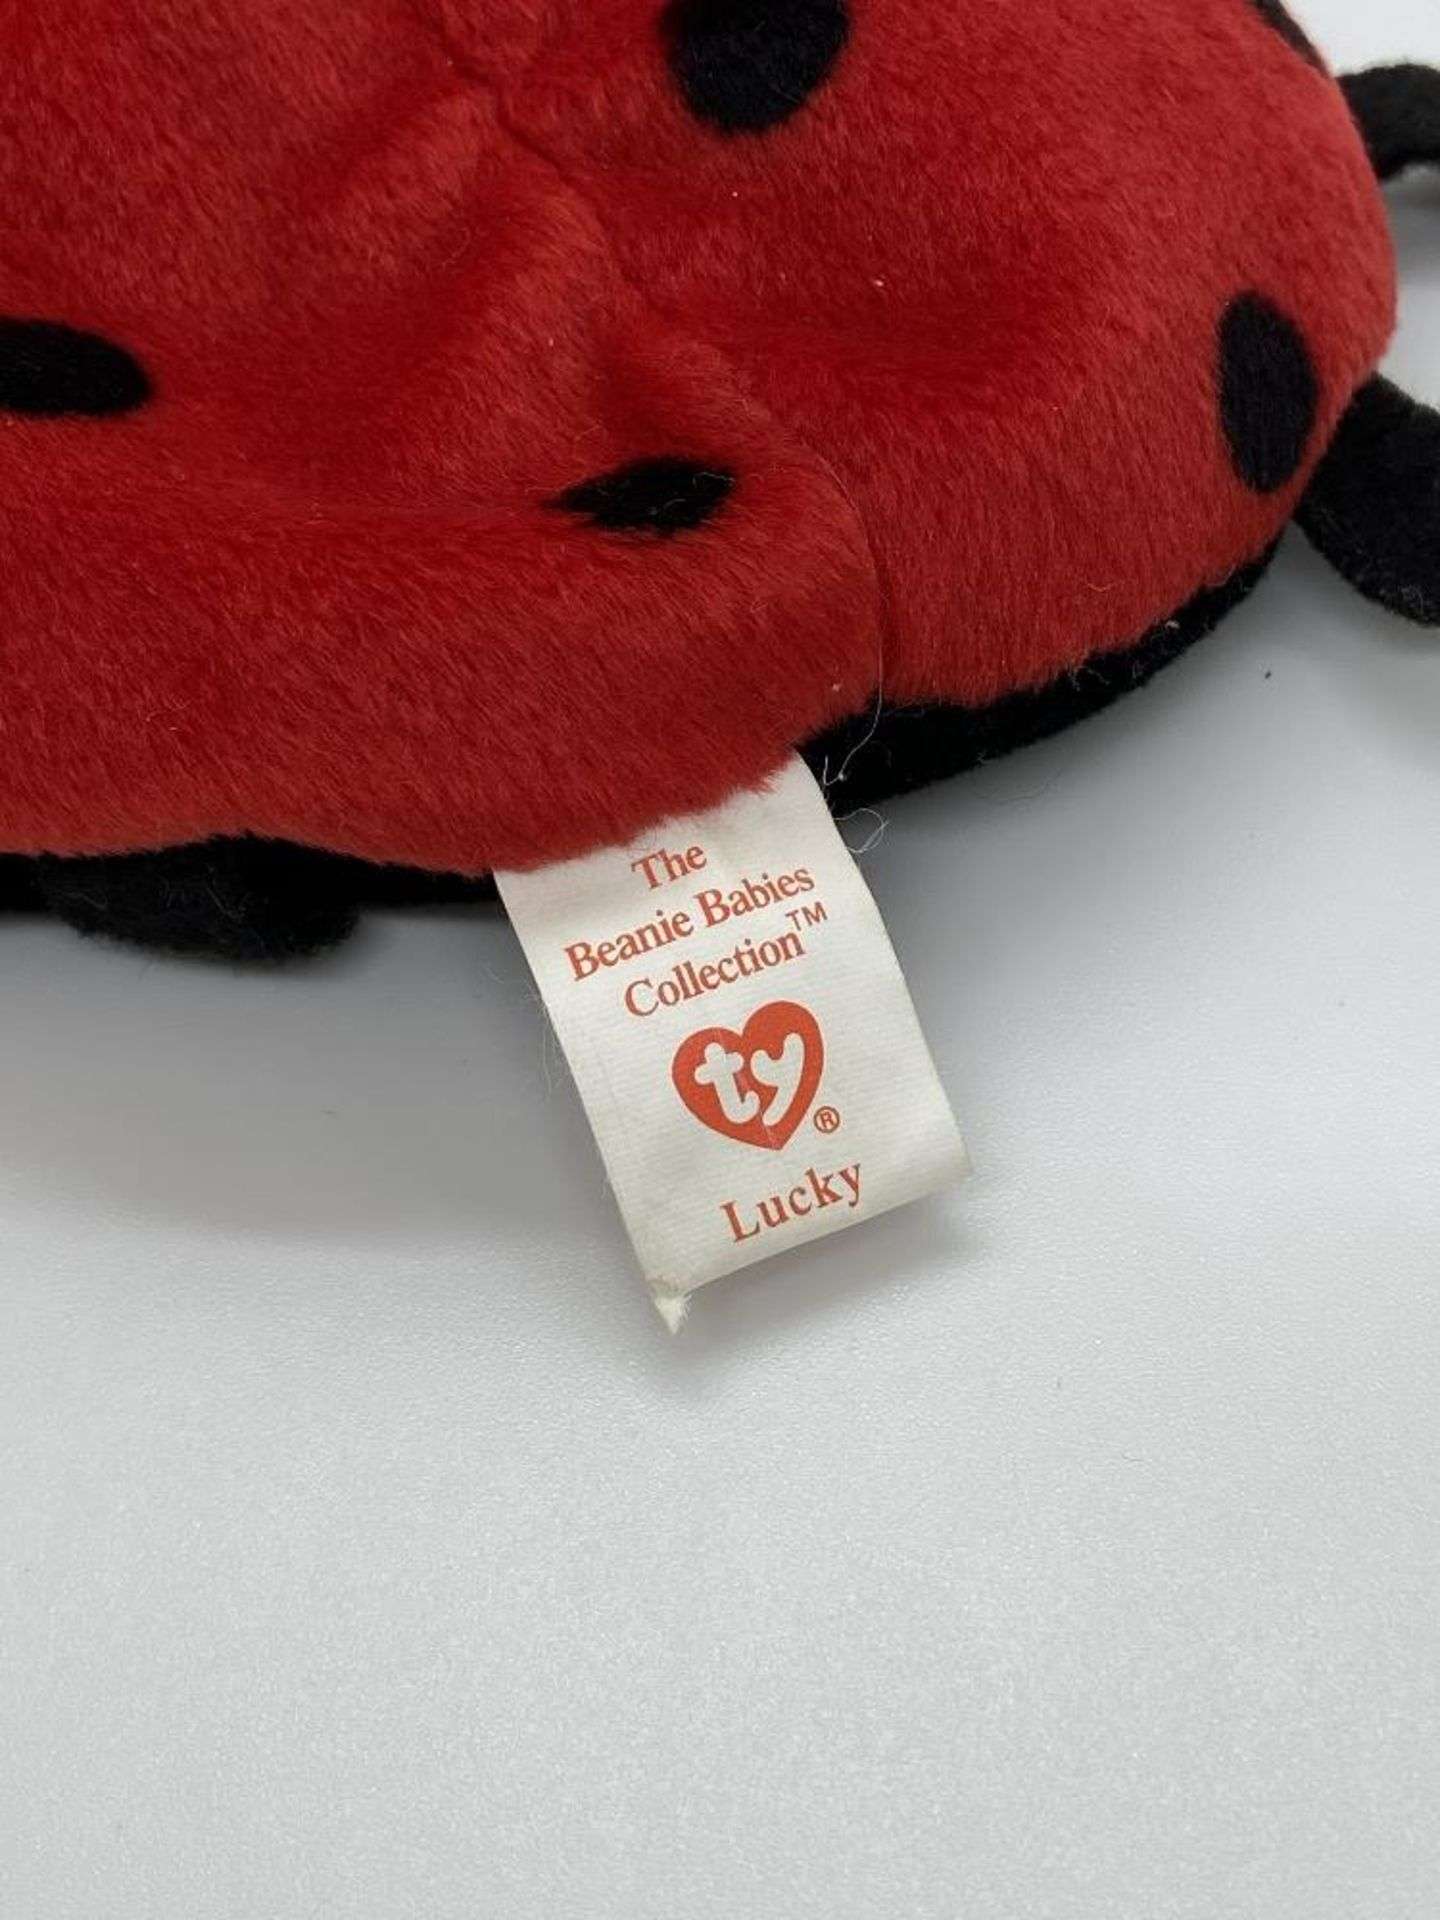 Ty Beanie Babies Lucky, The Ladybug, EARLY GEN 1993, PVC Pellets, w/o Hang Tag - Image 5 of 6